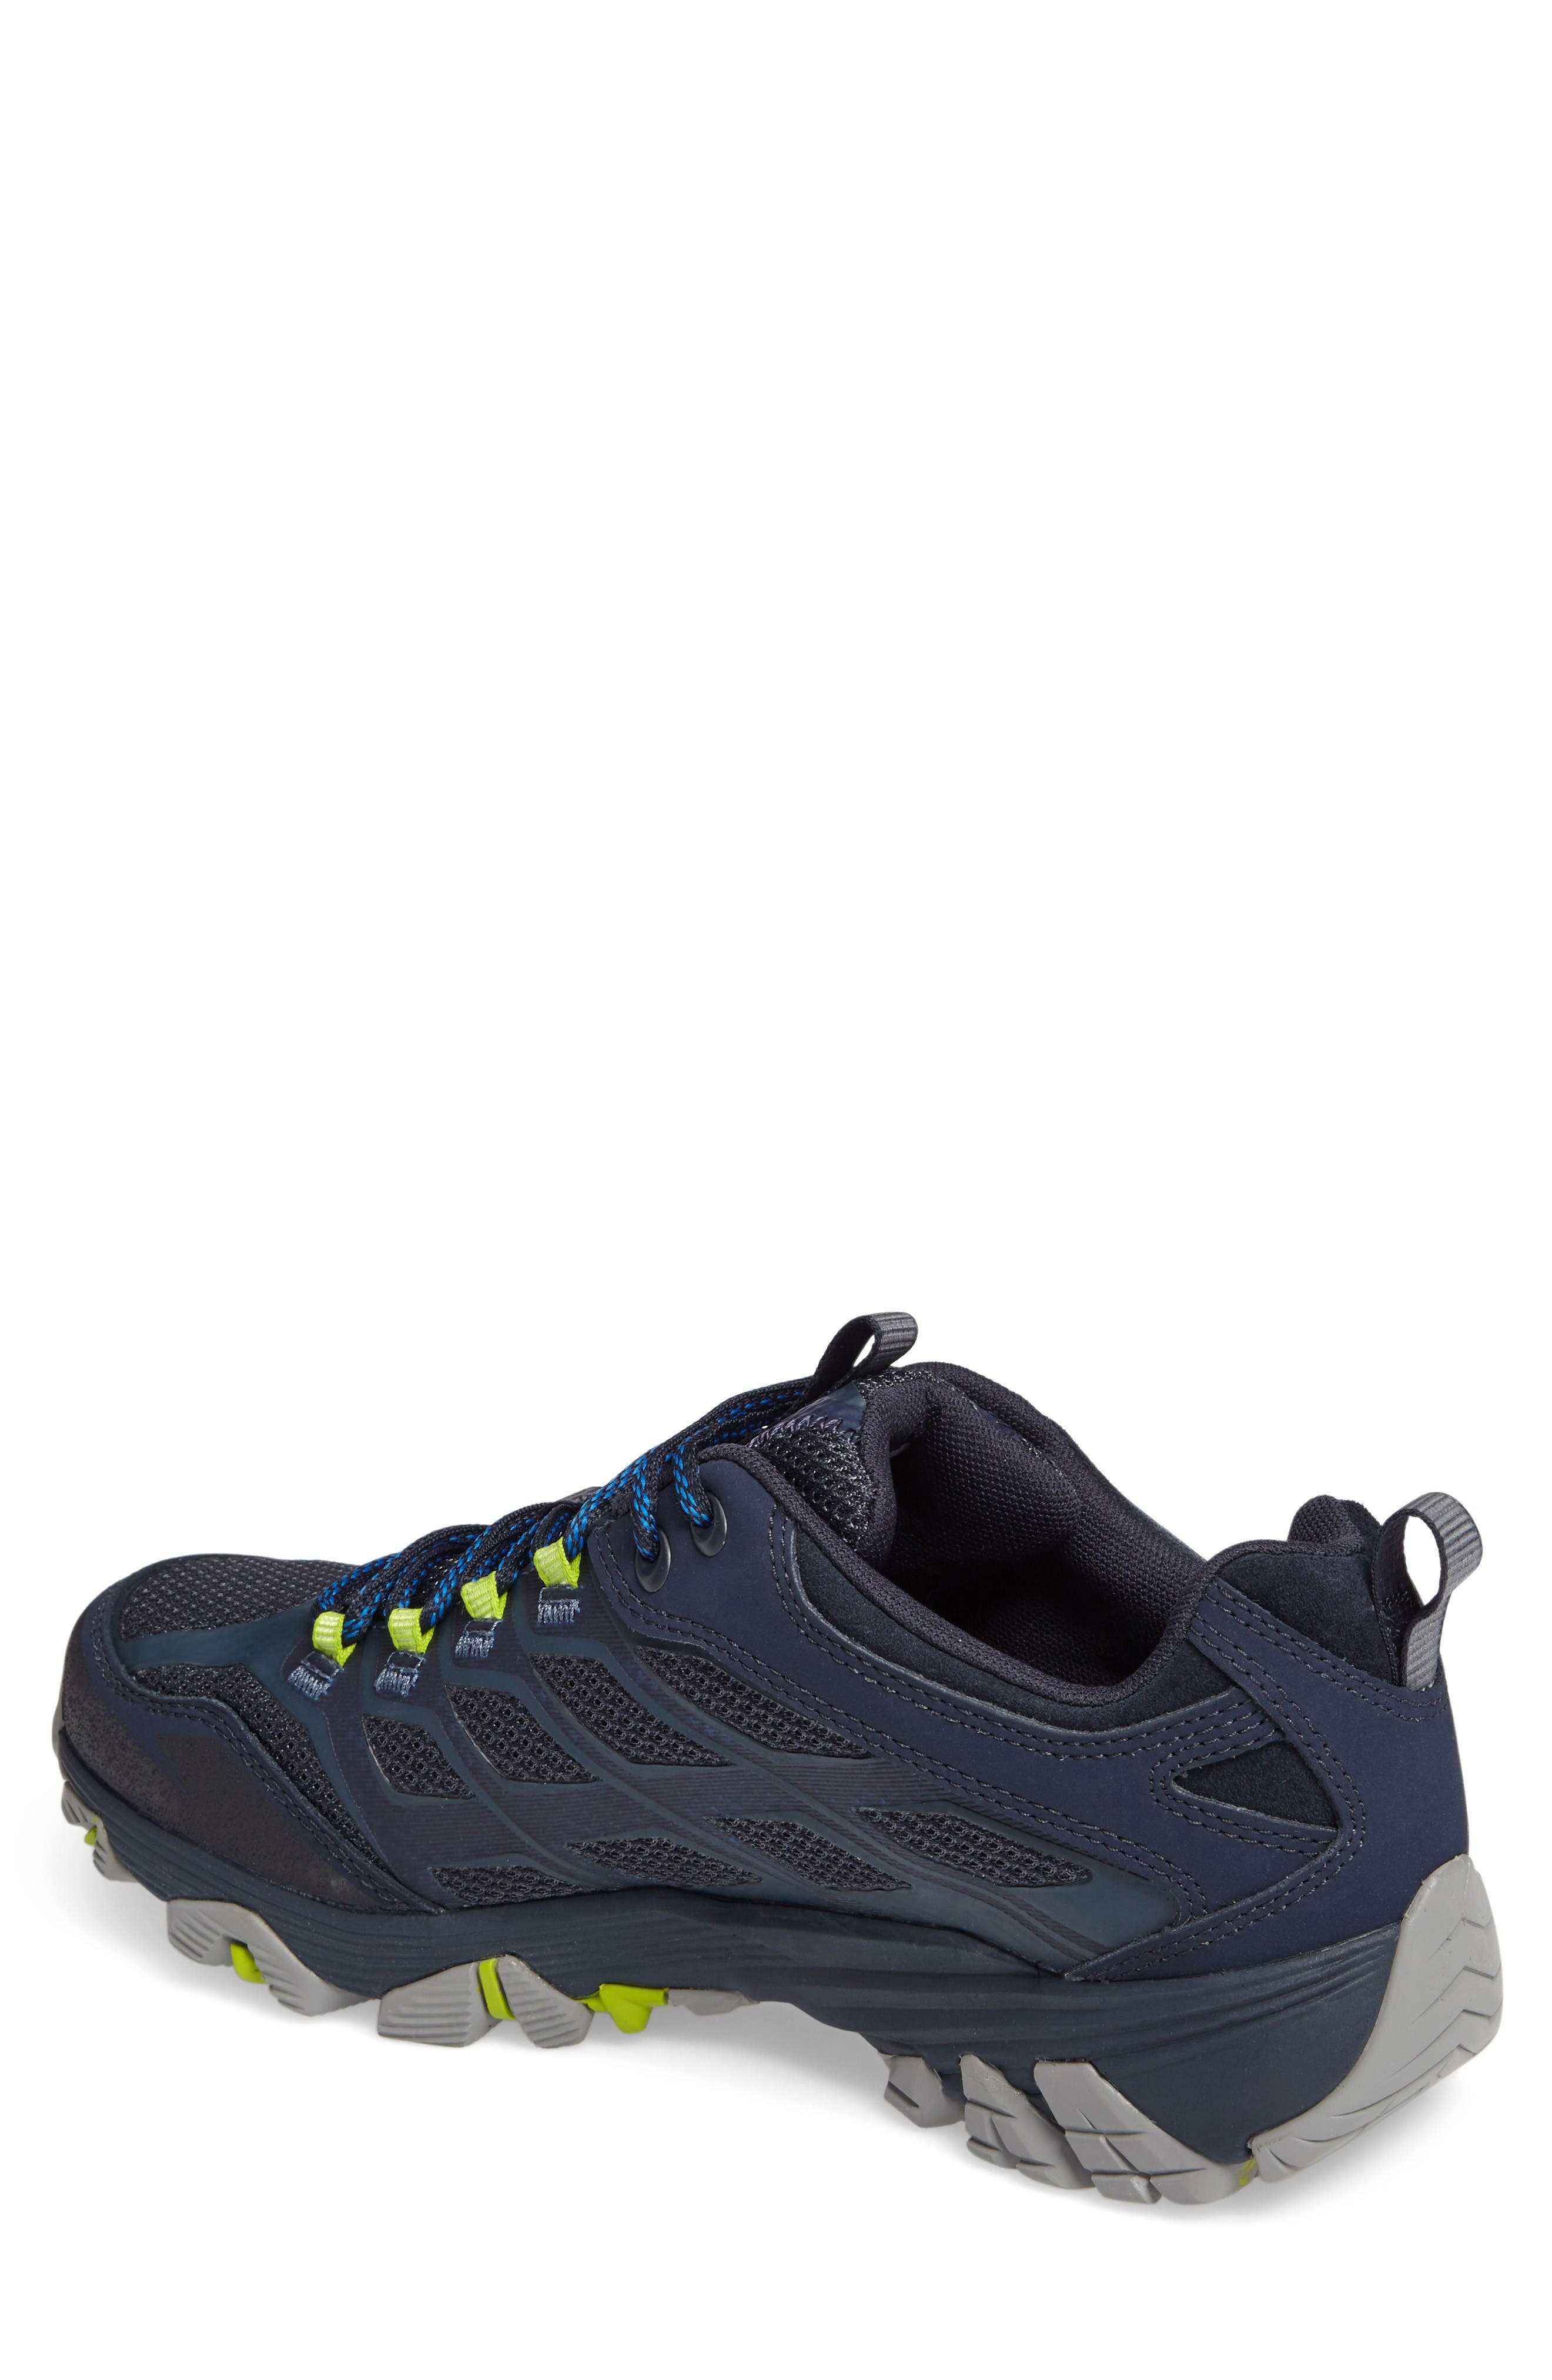 Moab FST Hiking Shoe,                             Alternate thumbnail 2, color,                             Navy